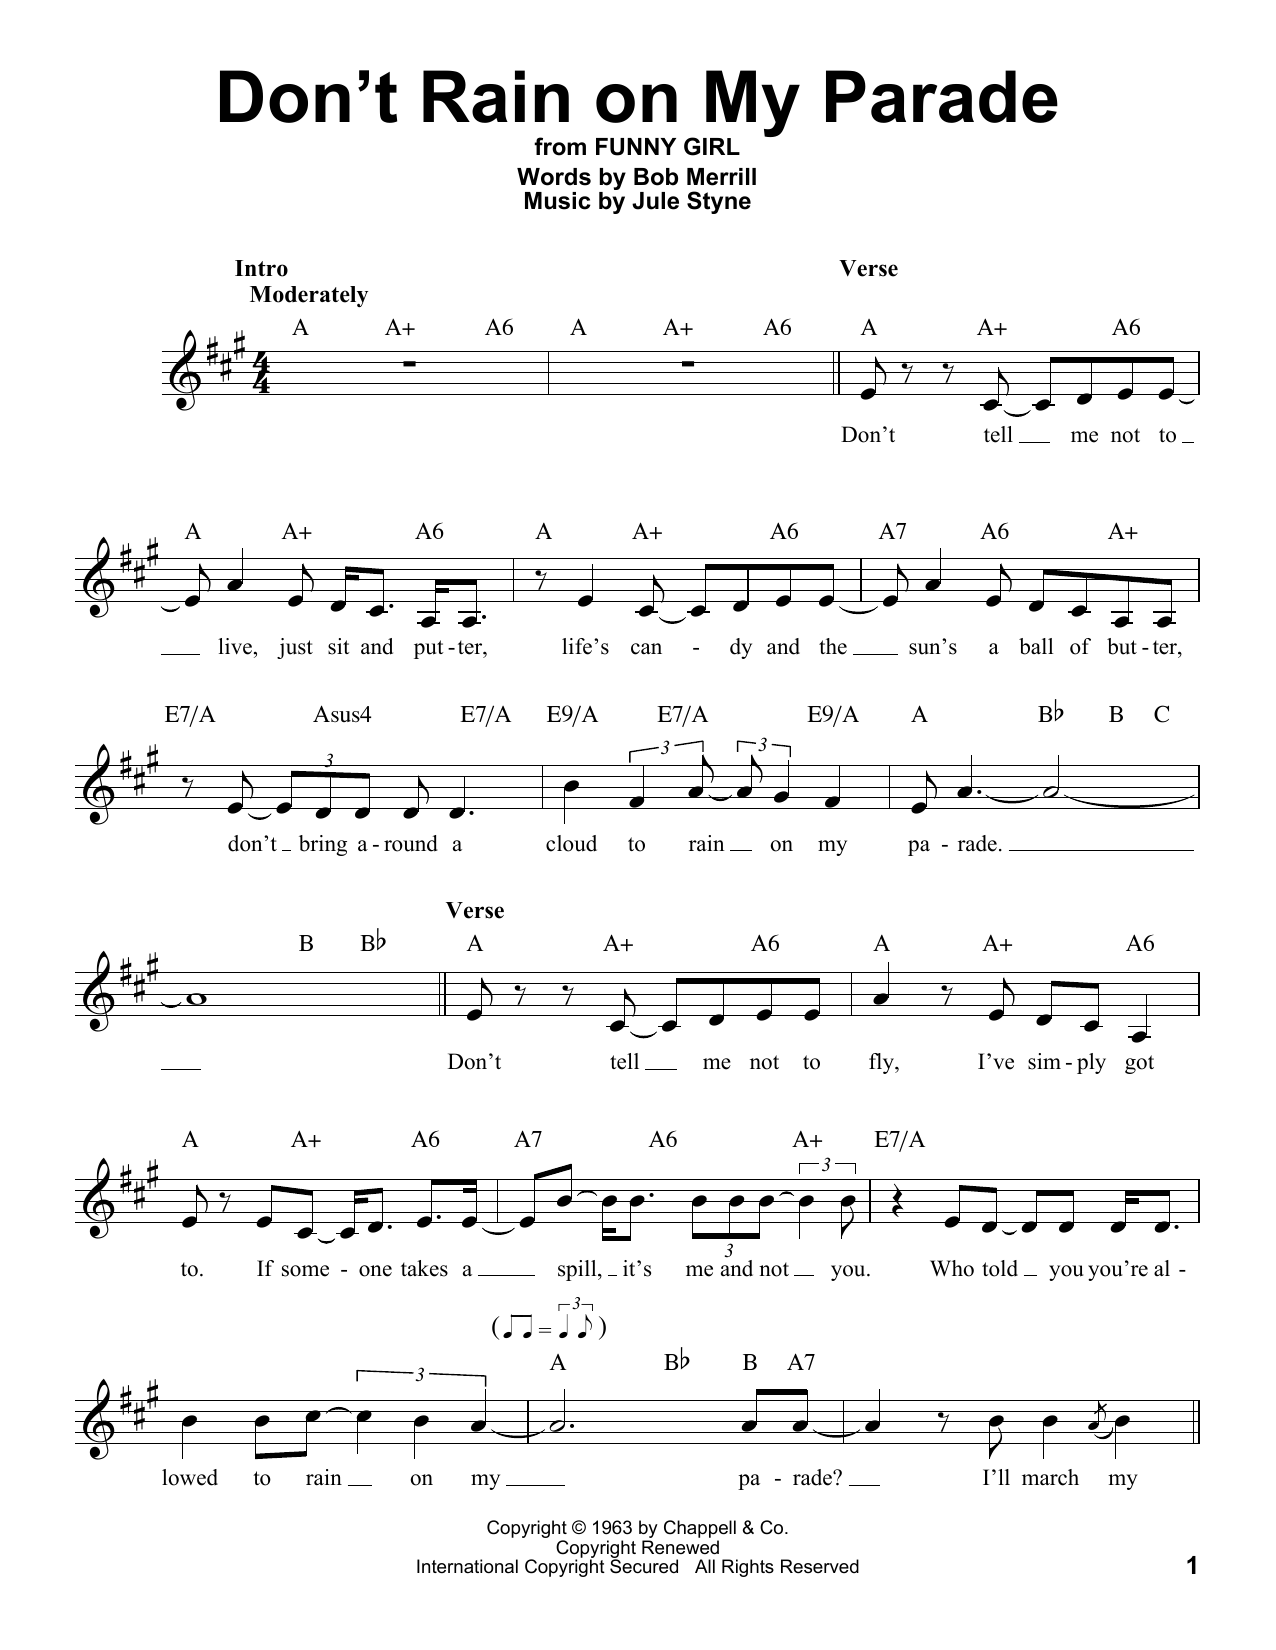 funny girl dont rain on my parade chords